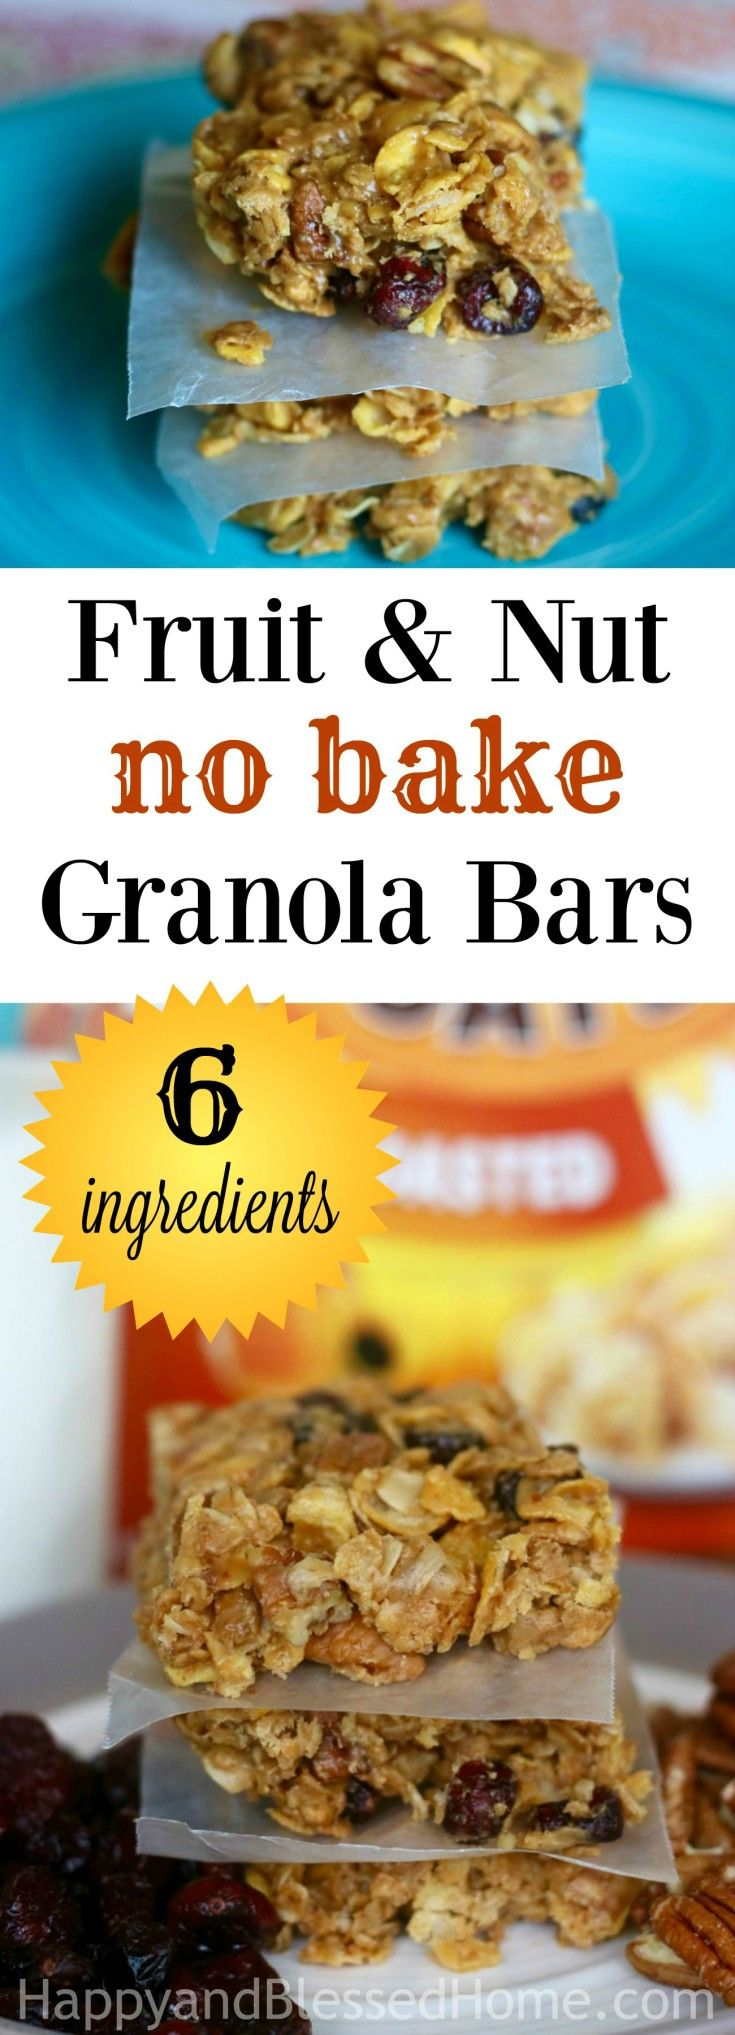 In this tasty, crunchy 6 Ingredient Healthy Fruit and Nut No Bake Granola Bars Recipe, I've revised one my most popular no bake granola bar recipes to take out the butter, sugar and corn syrup. Does it still taste great? YES! Is it lower in calories and higher in protein? YES! WOOT! Why not make-over your breakfast or snack time and enjoy these chewy cereal bars with milk? Ad #spoonfulsofgoodness